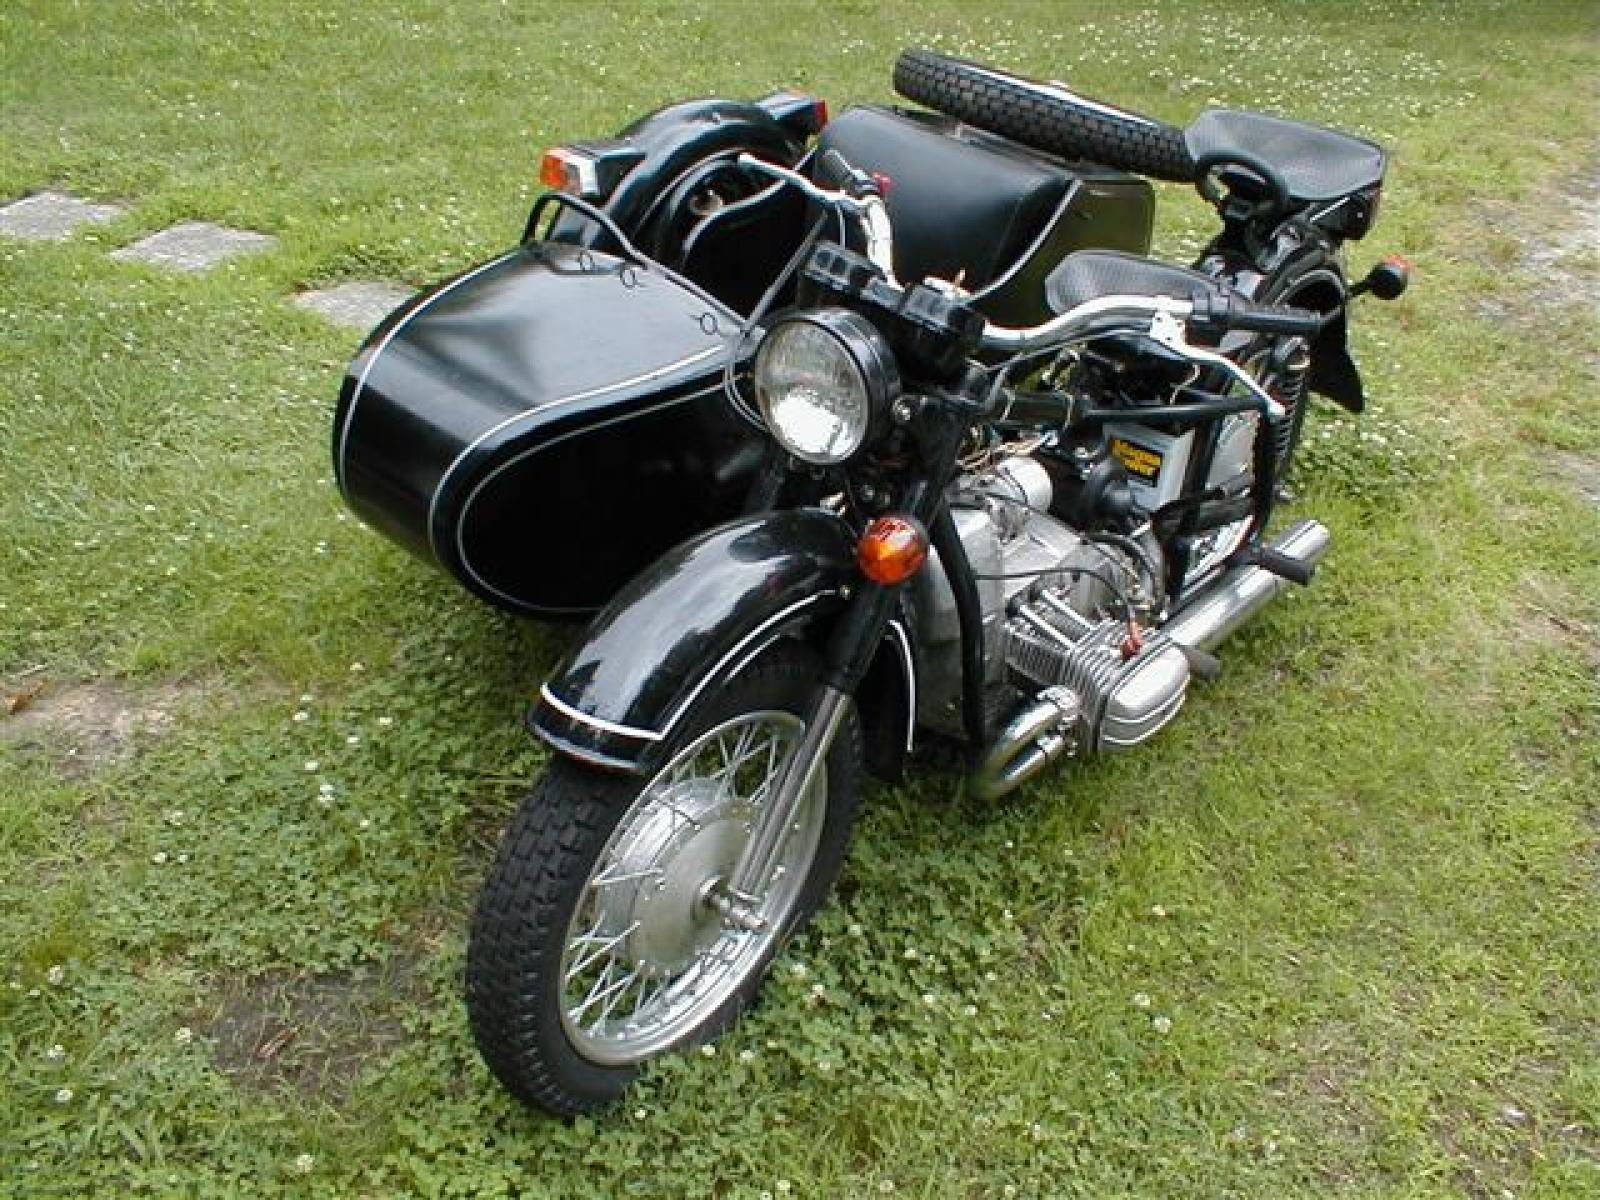 Dnepr MT 11 with sidecar 1987 images #95615